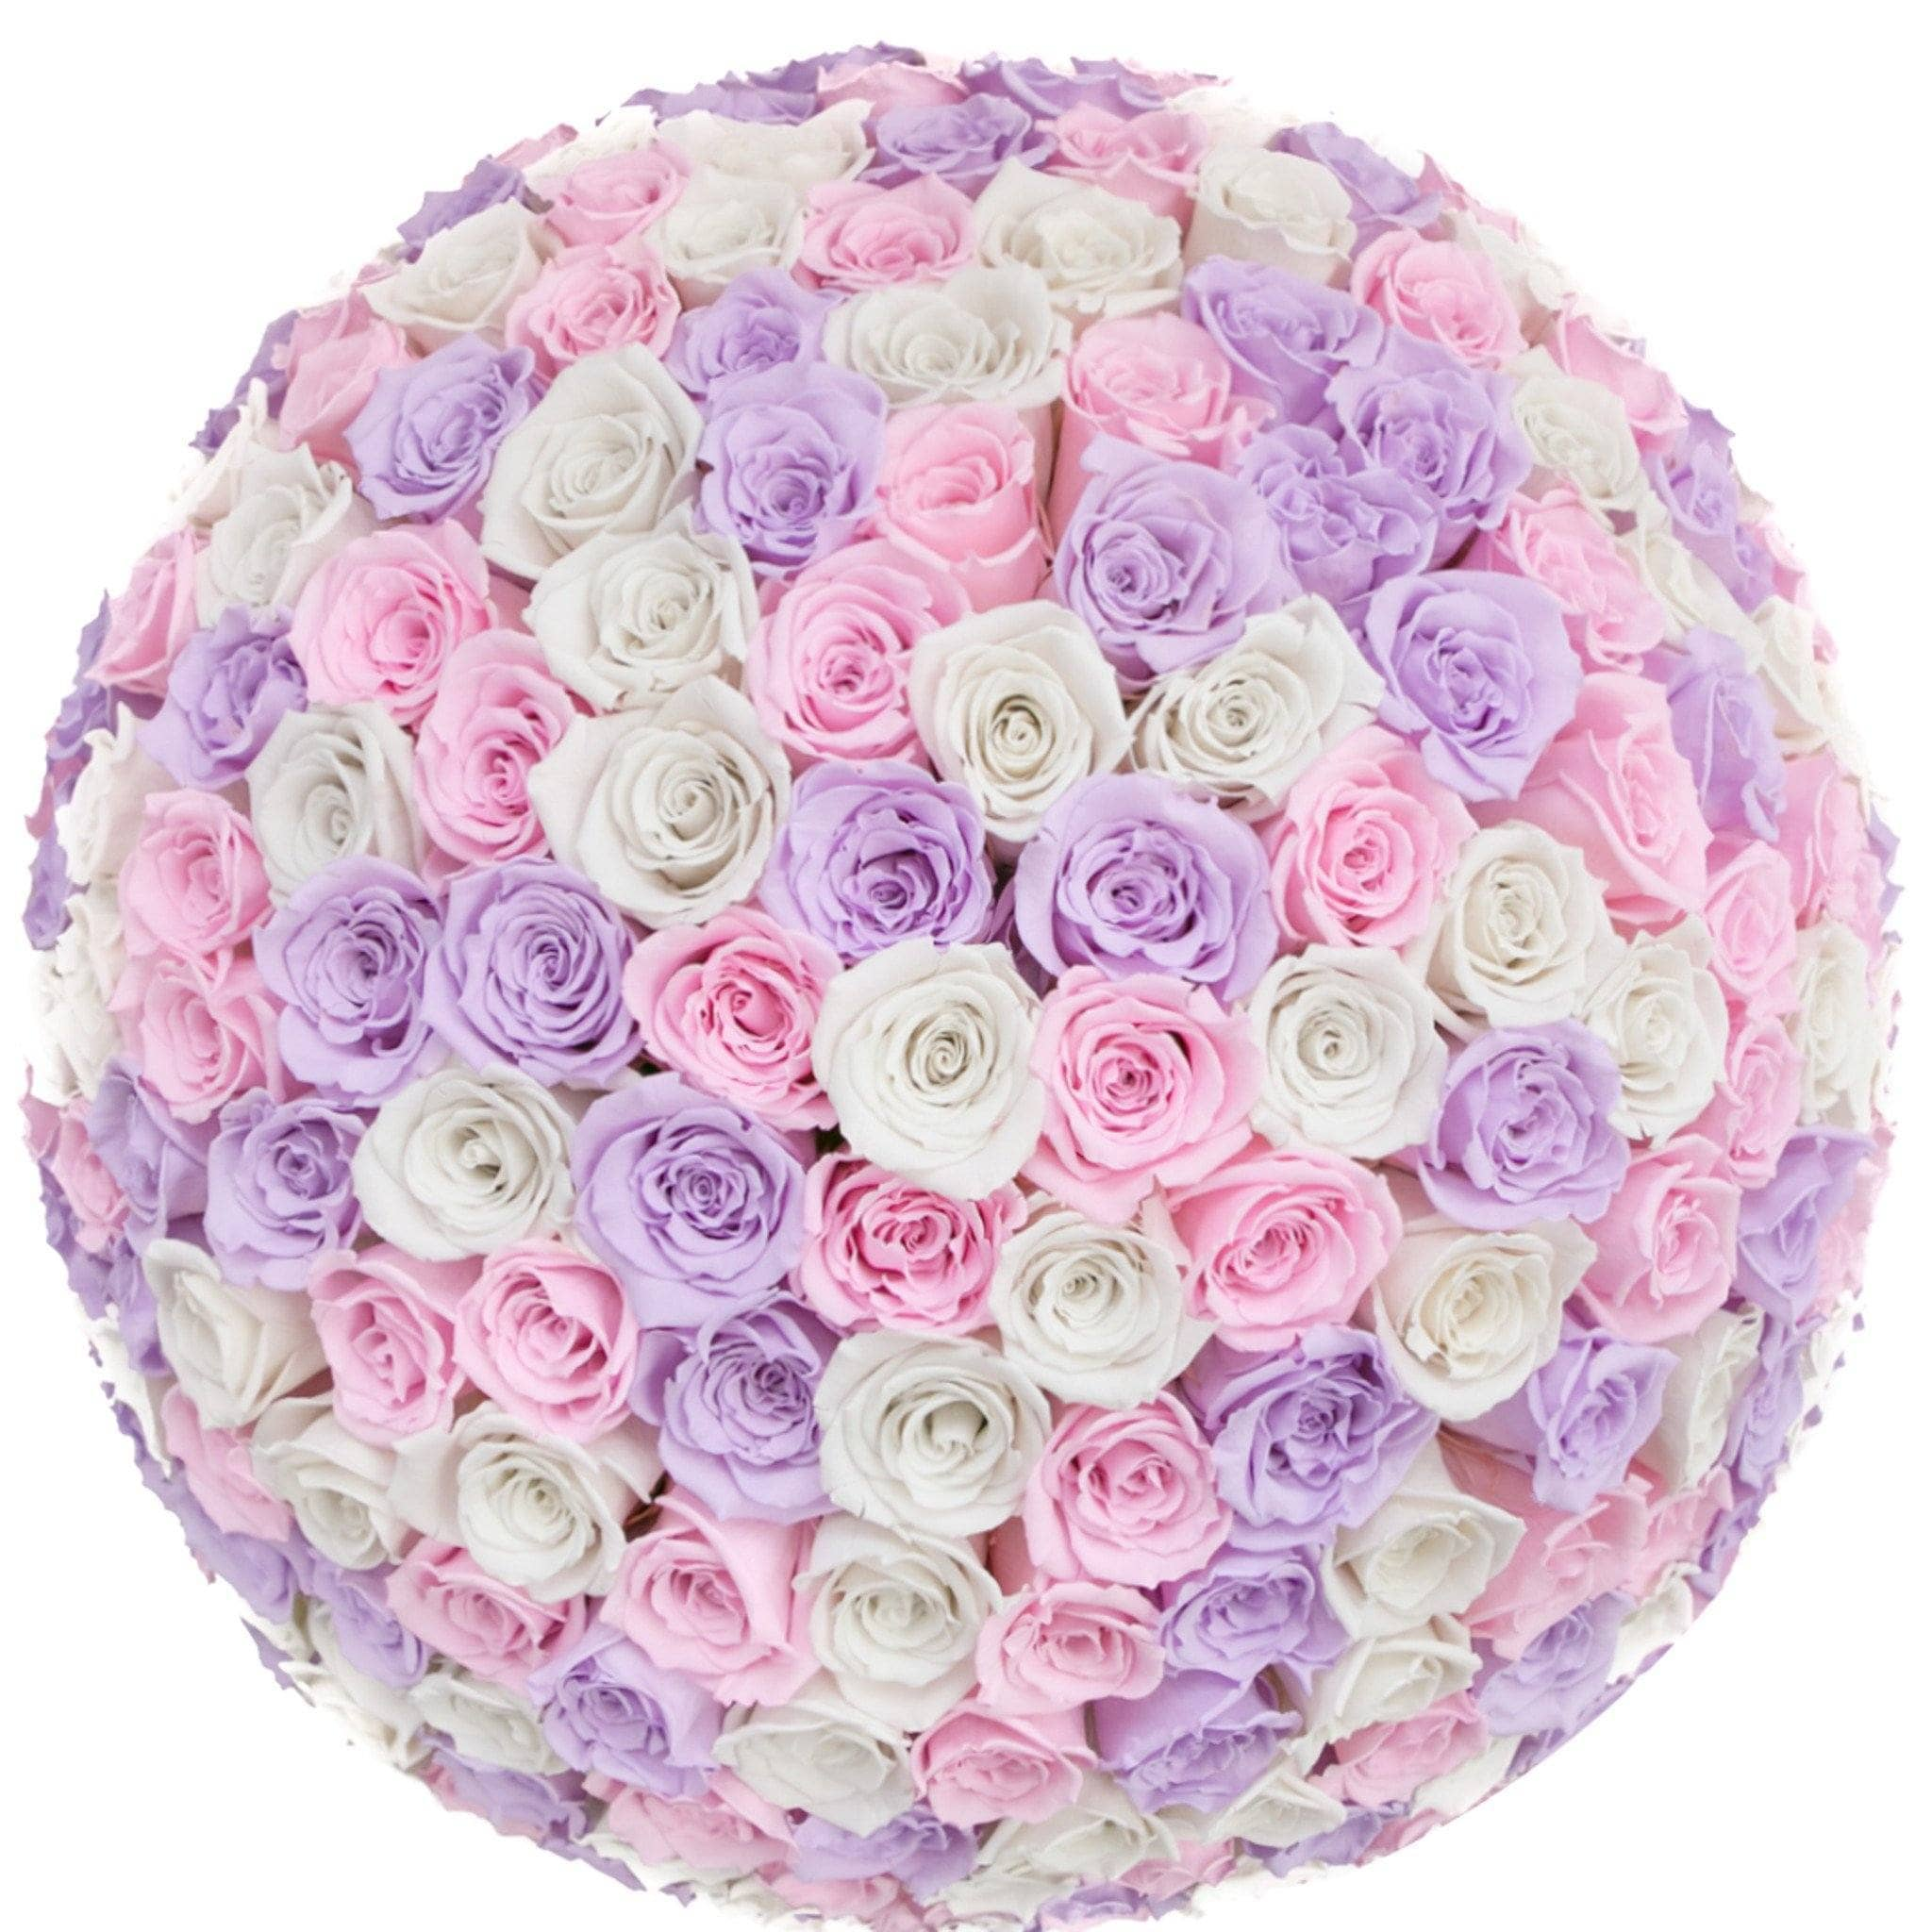 Princess Roses That Last A Year (Dome) - Deluxe Rose Box - Palatial Petals